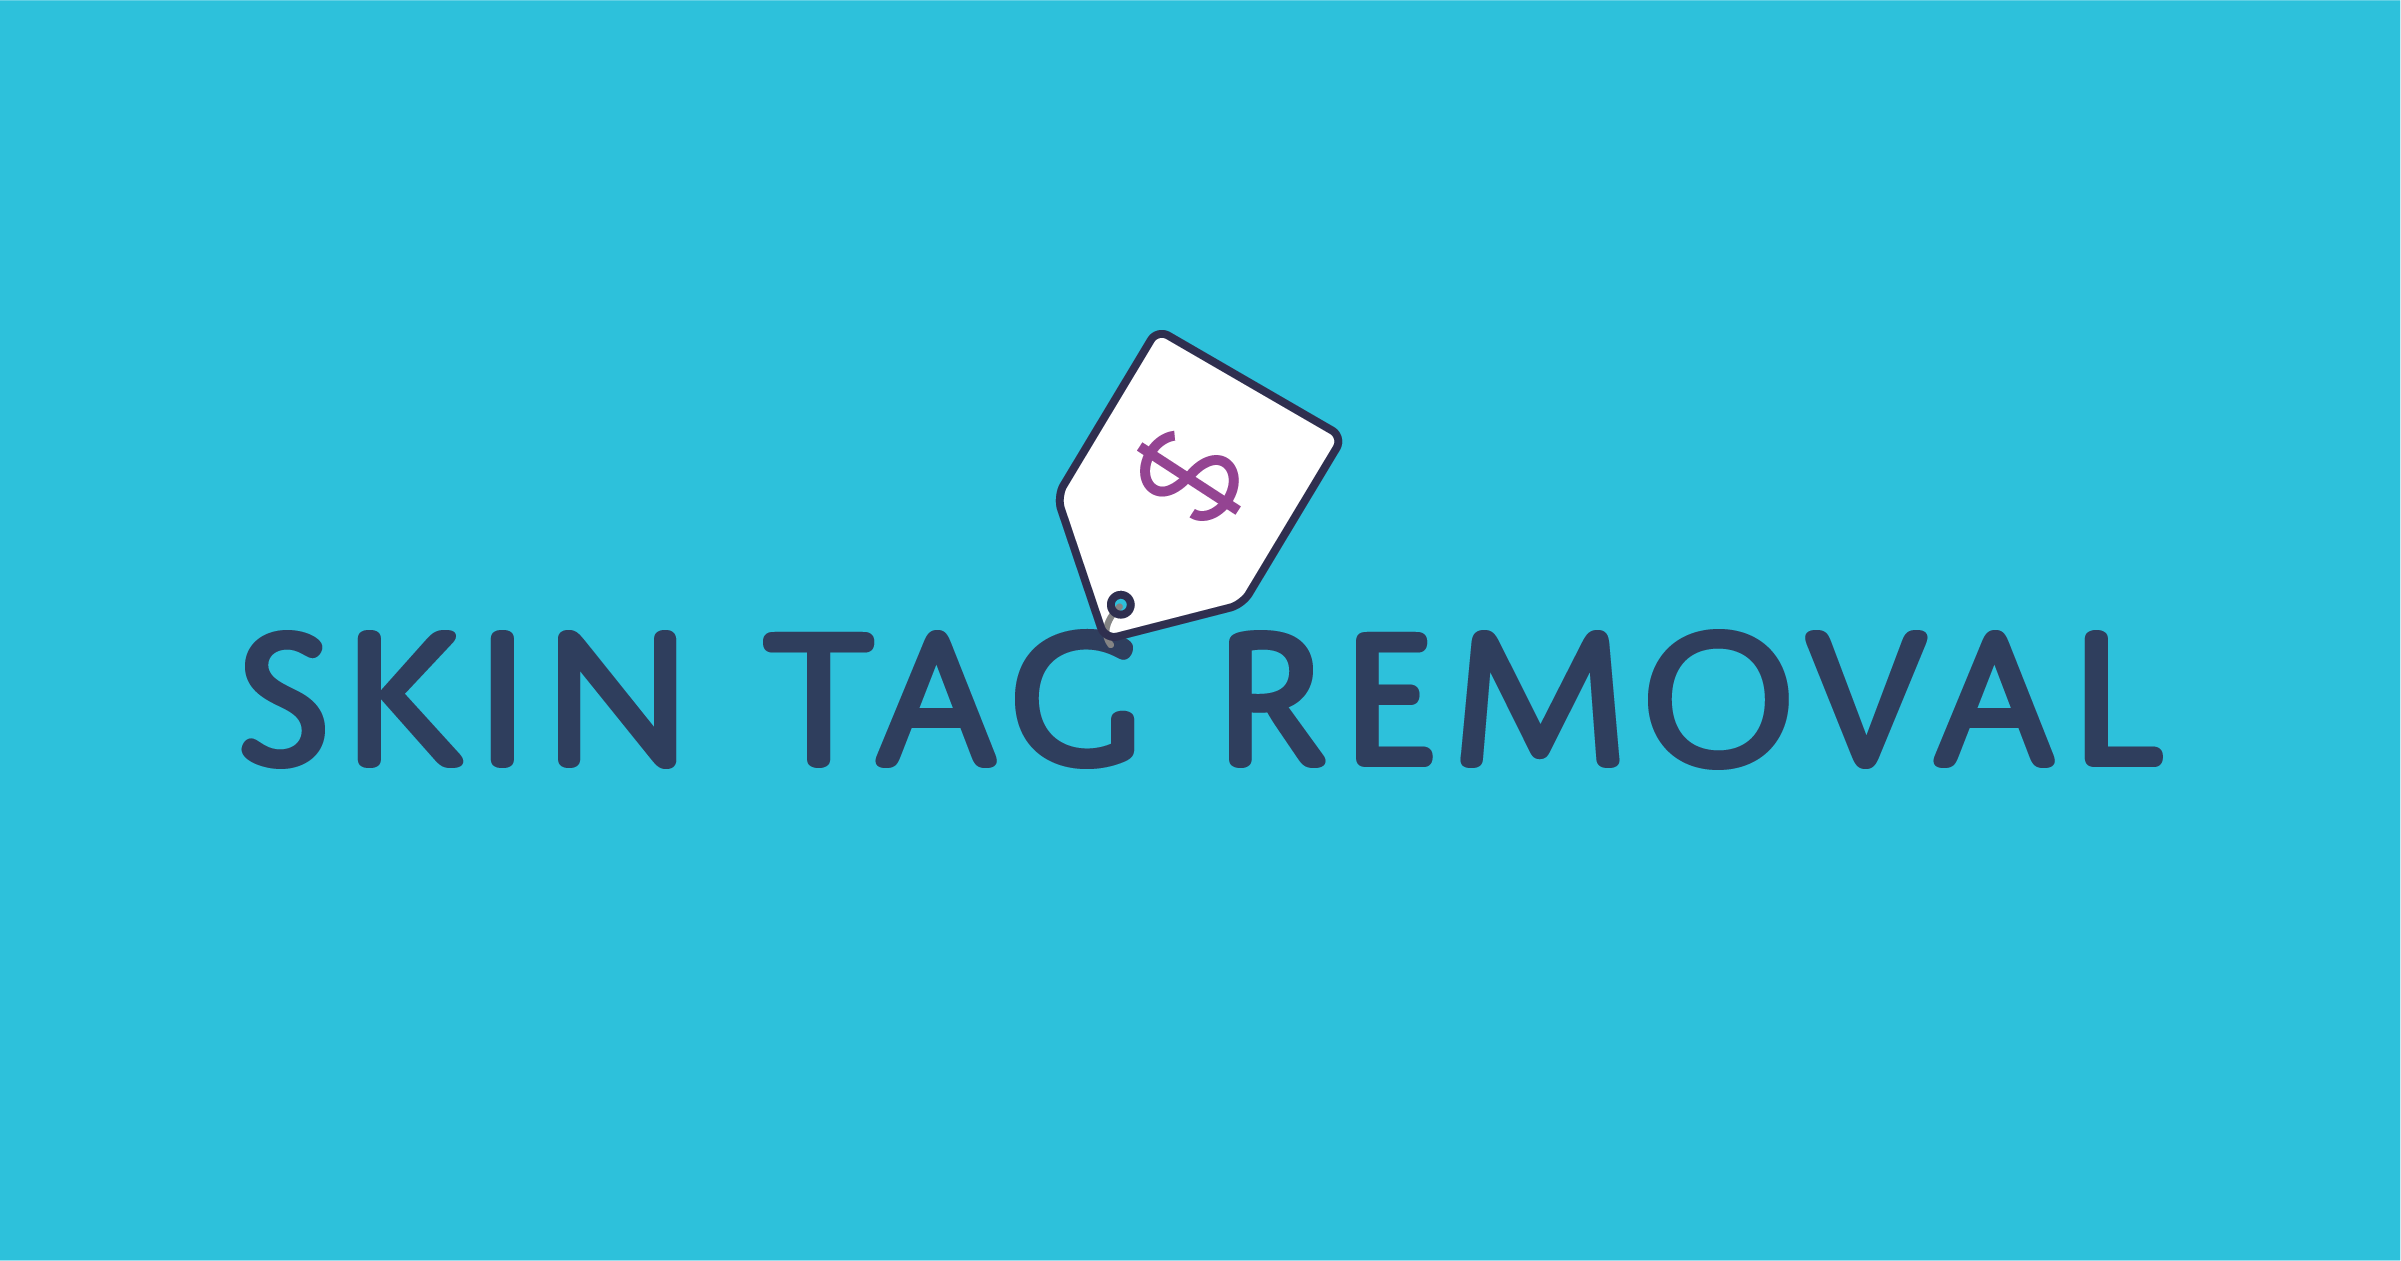 How much does skin tag removal cost?